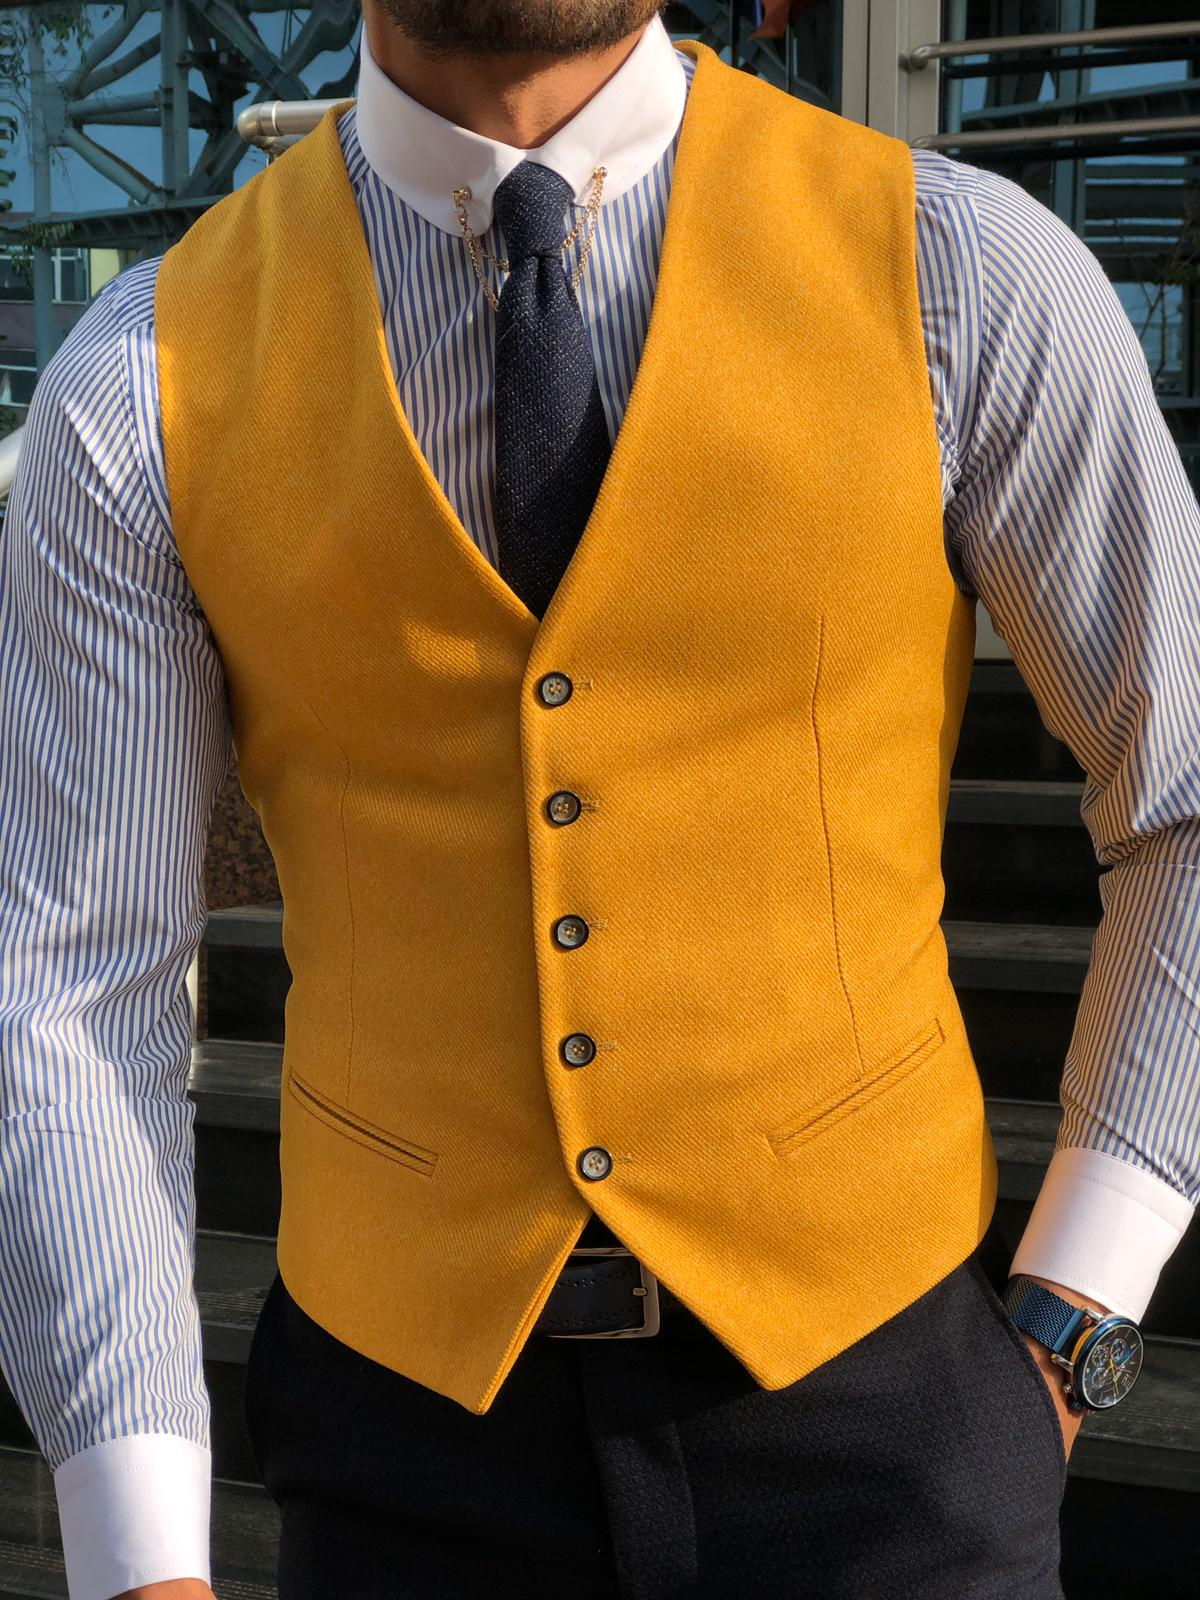 MUSTARD COTTON VEST - Hollo Men